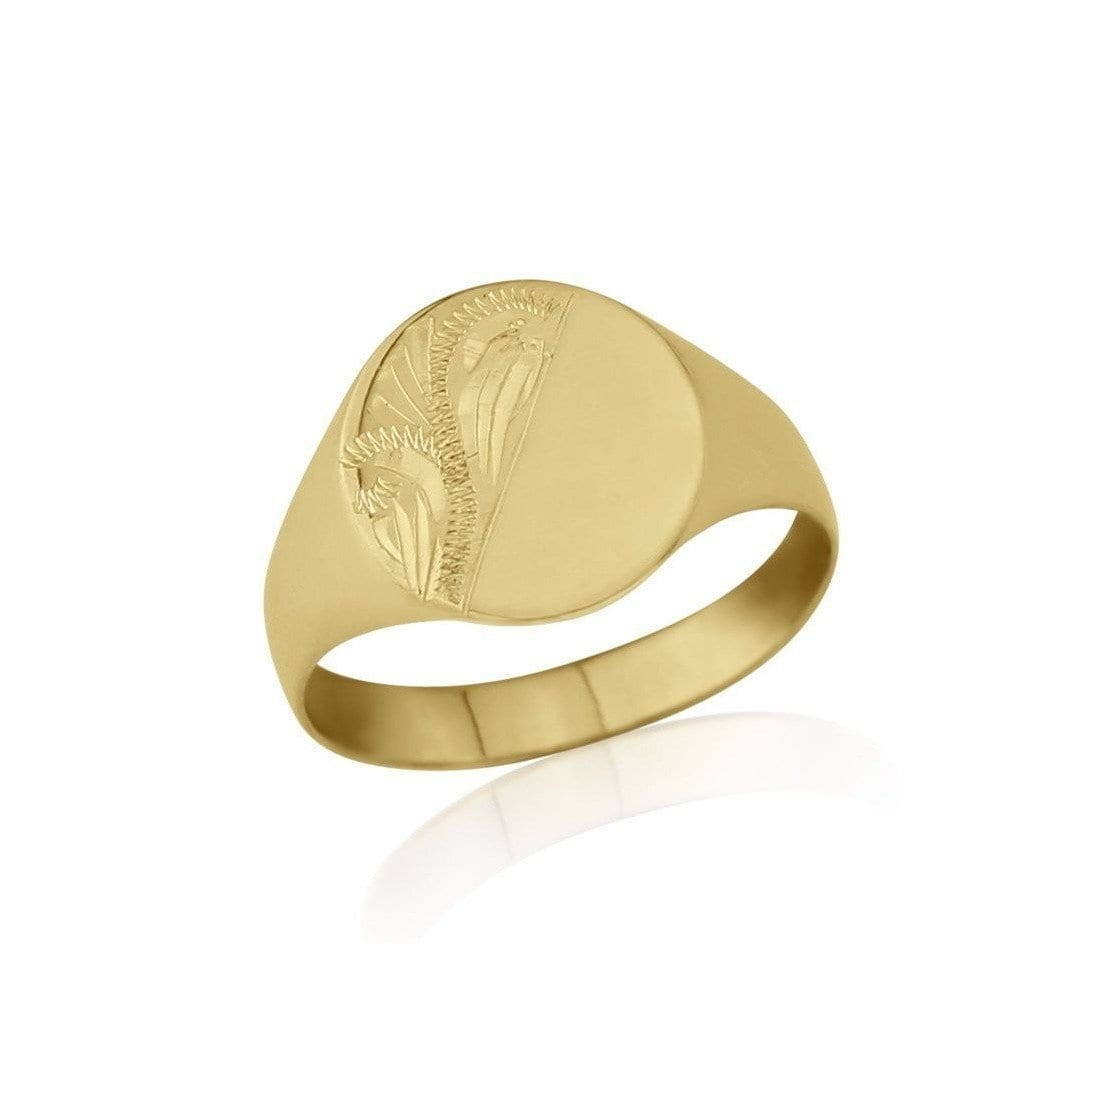 9kt Yellow Gold Lightweight Oval-Shaped Engraved Signet Wedding Ring